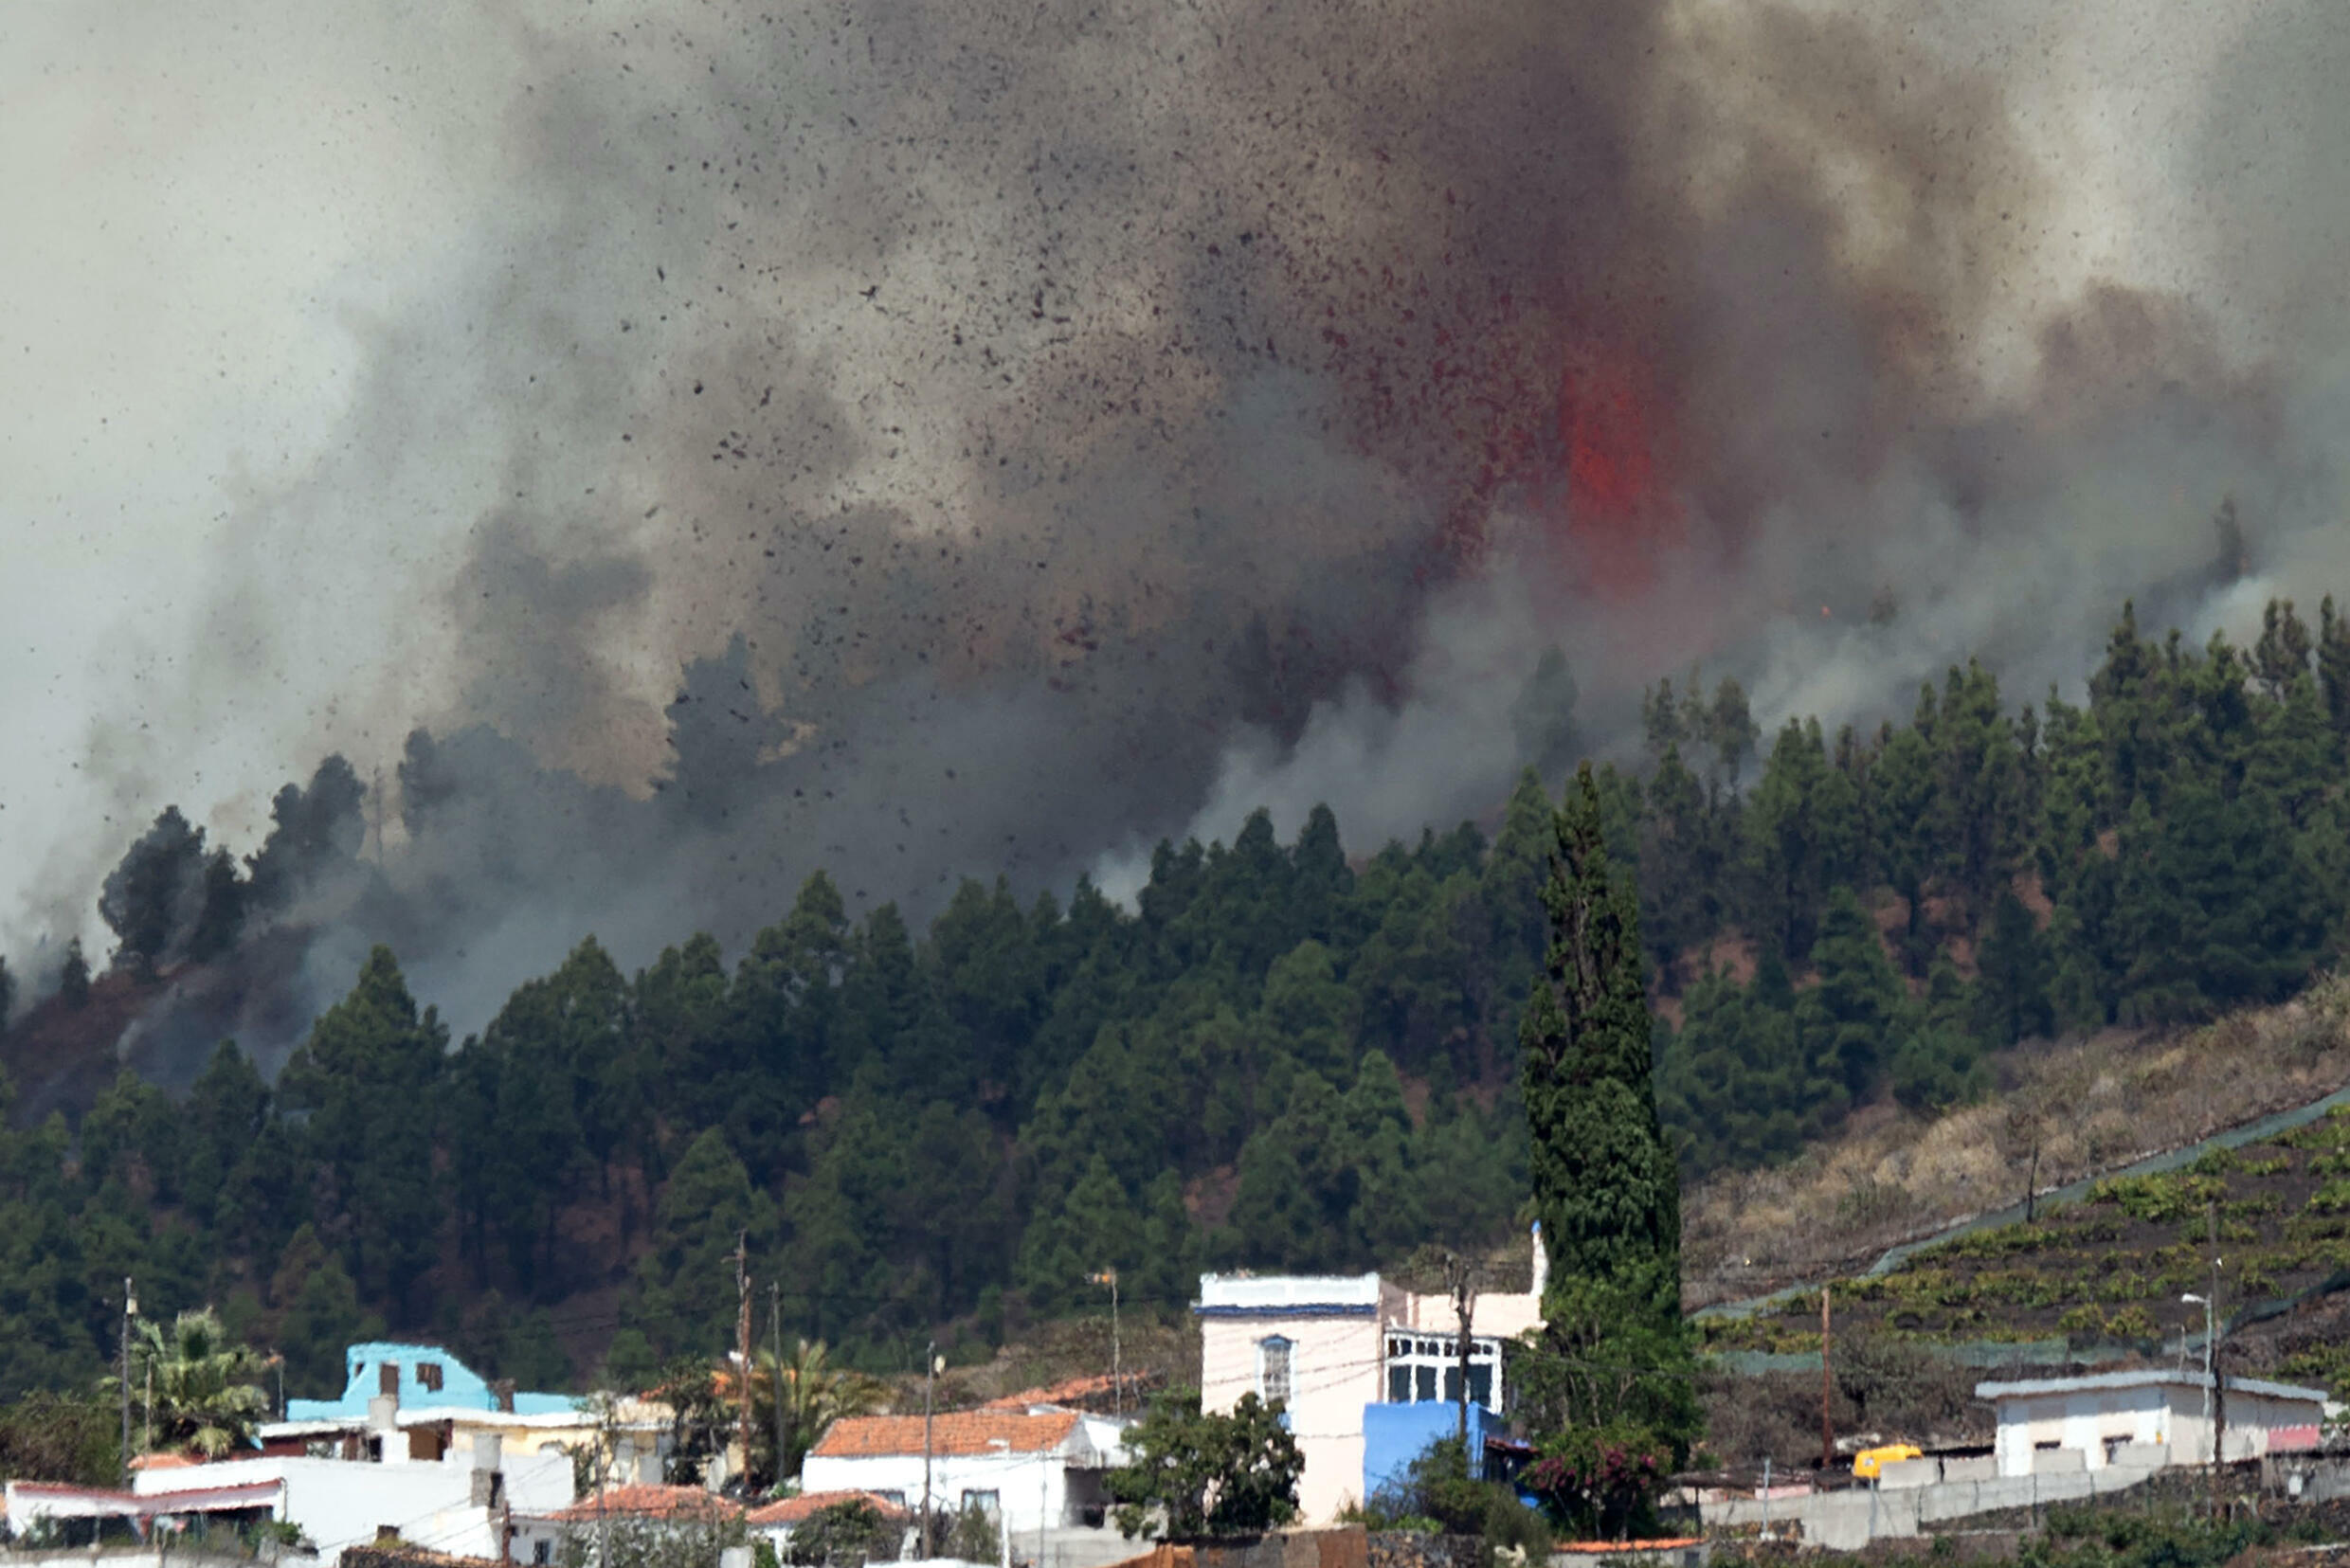 The Cumbre Vieja volcano has forced some 6,000 people from their homes, and destroyed 166 properties